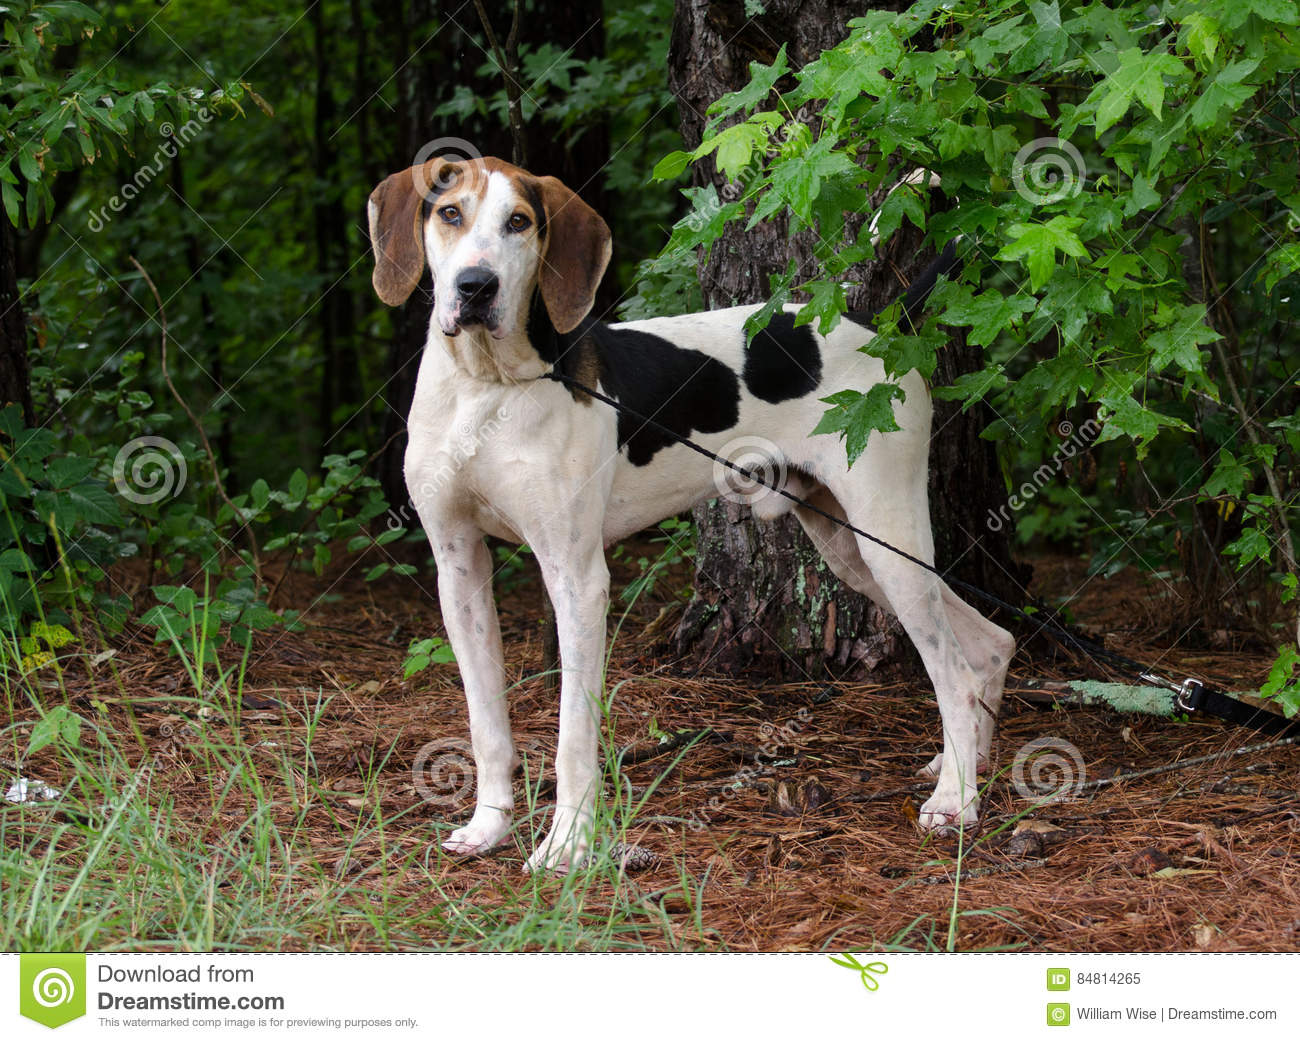 Shiba Inu Dog Reviews besides Watch also Shepherd Mix 3 also File Beagle harrier as well Harrier Puppy Best Pictures. on miniature beagle for adoption